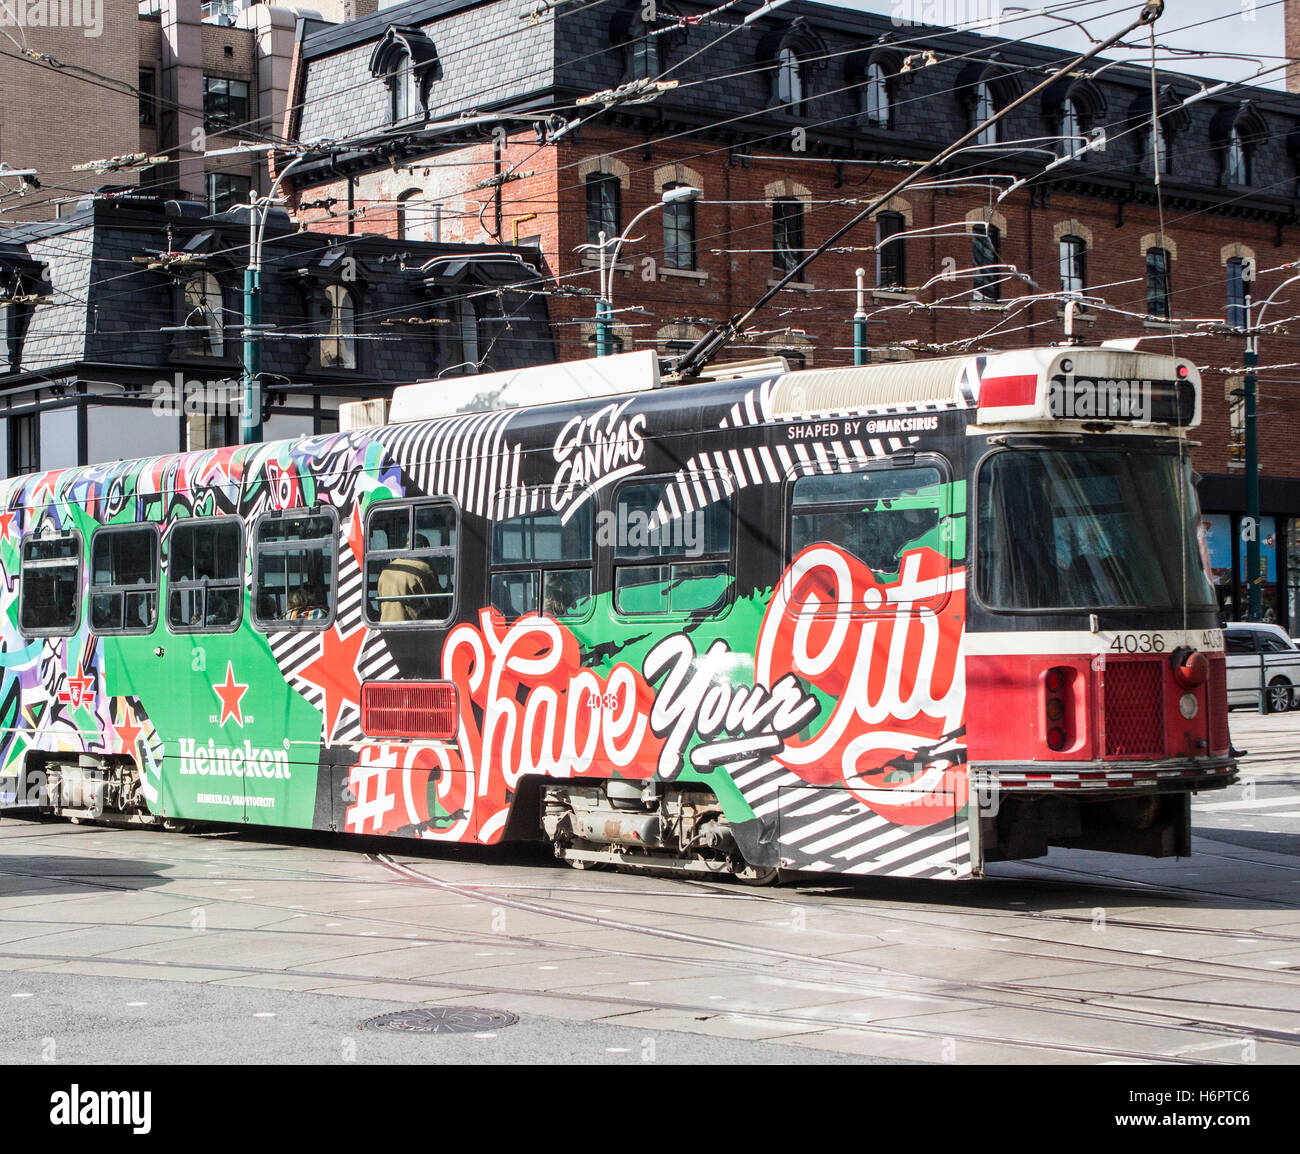 clrv-streetcar-with-advertisement-on-sid